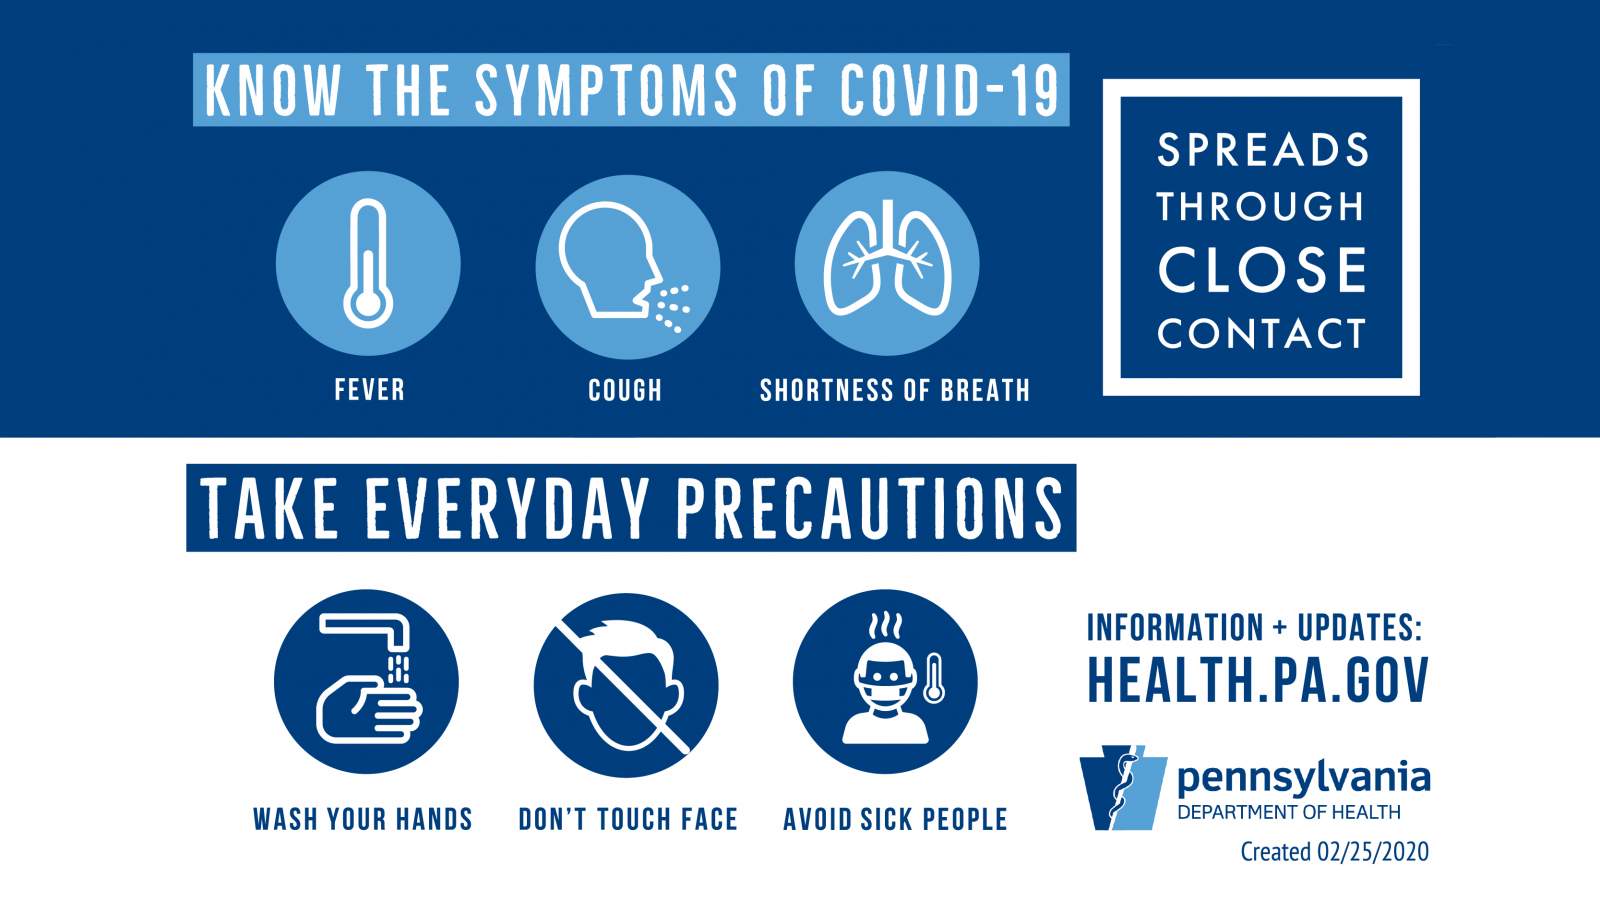 know the symptoms infographic fever cough shortness of breath